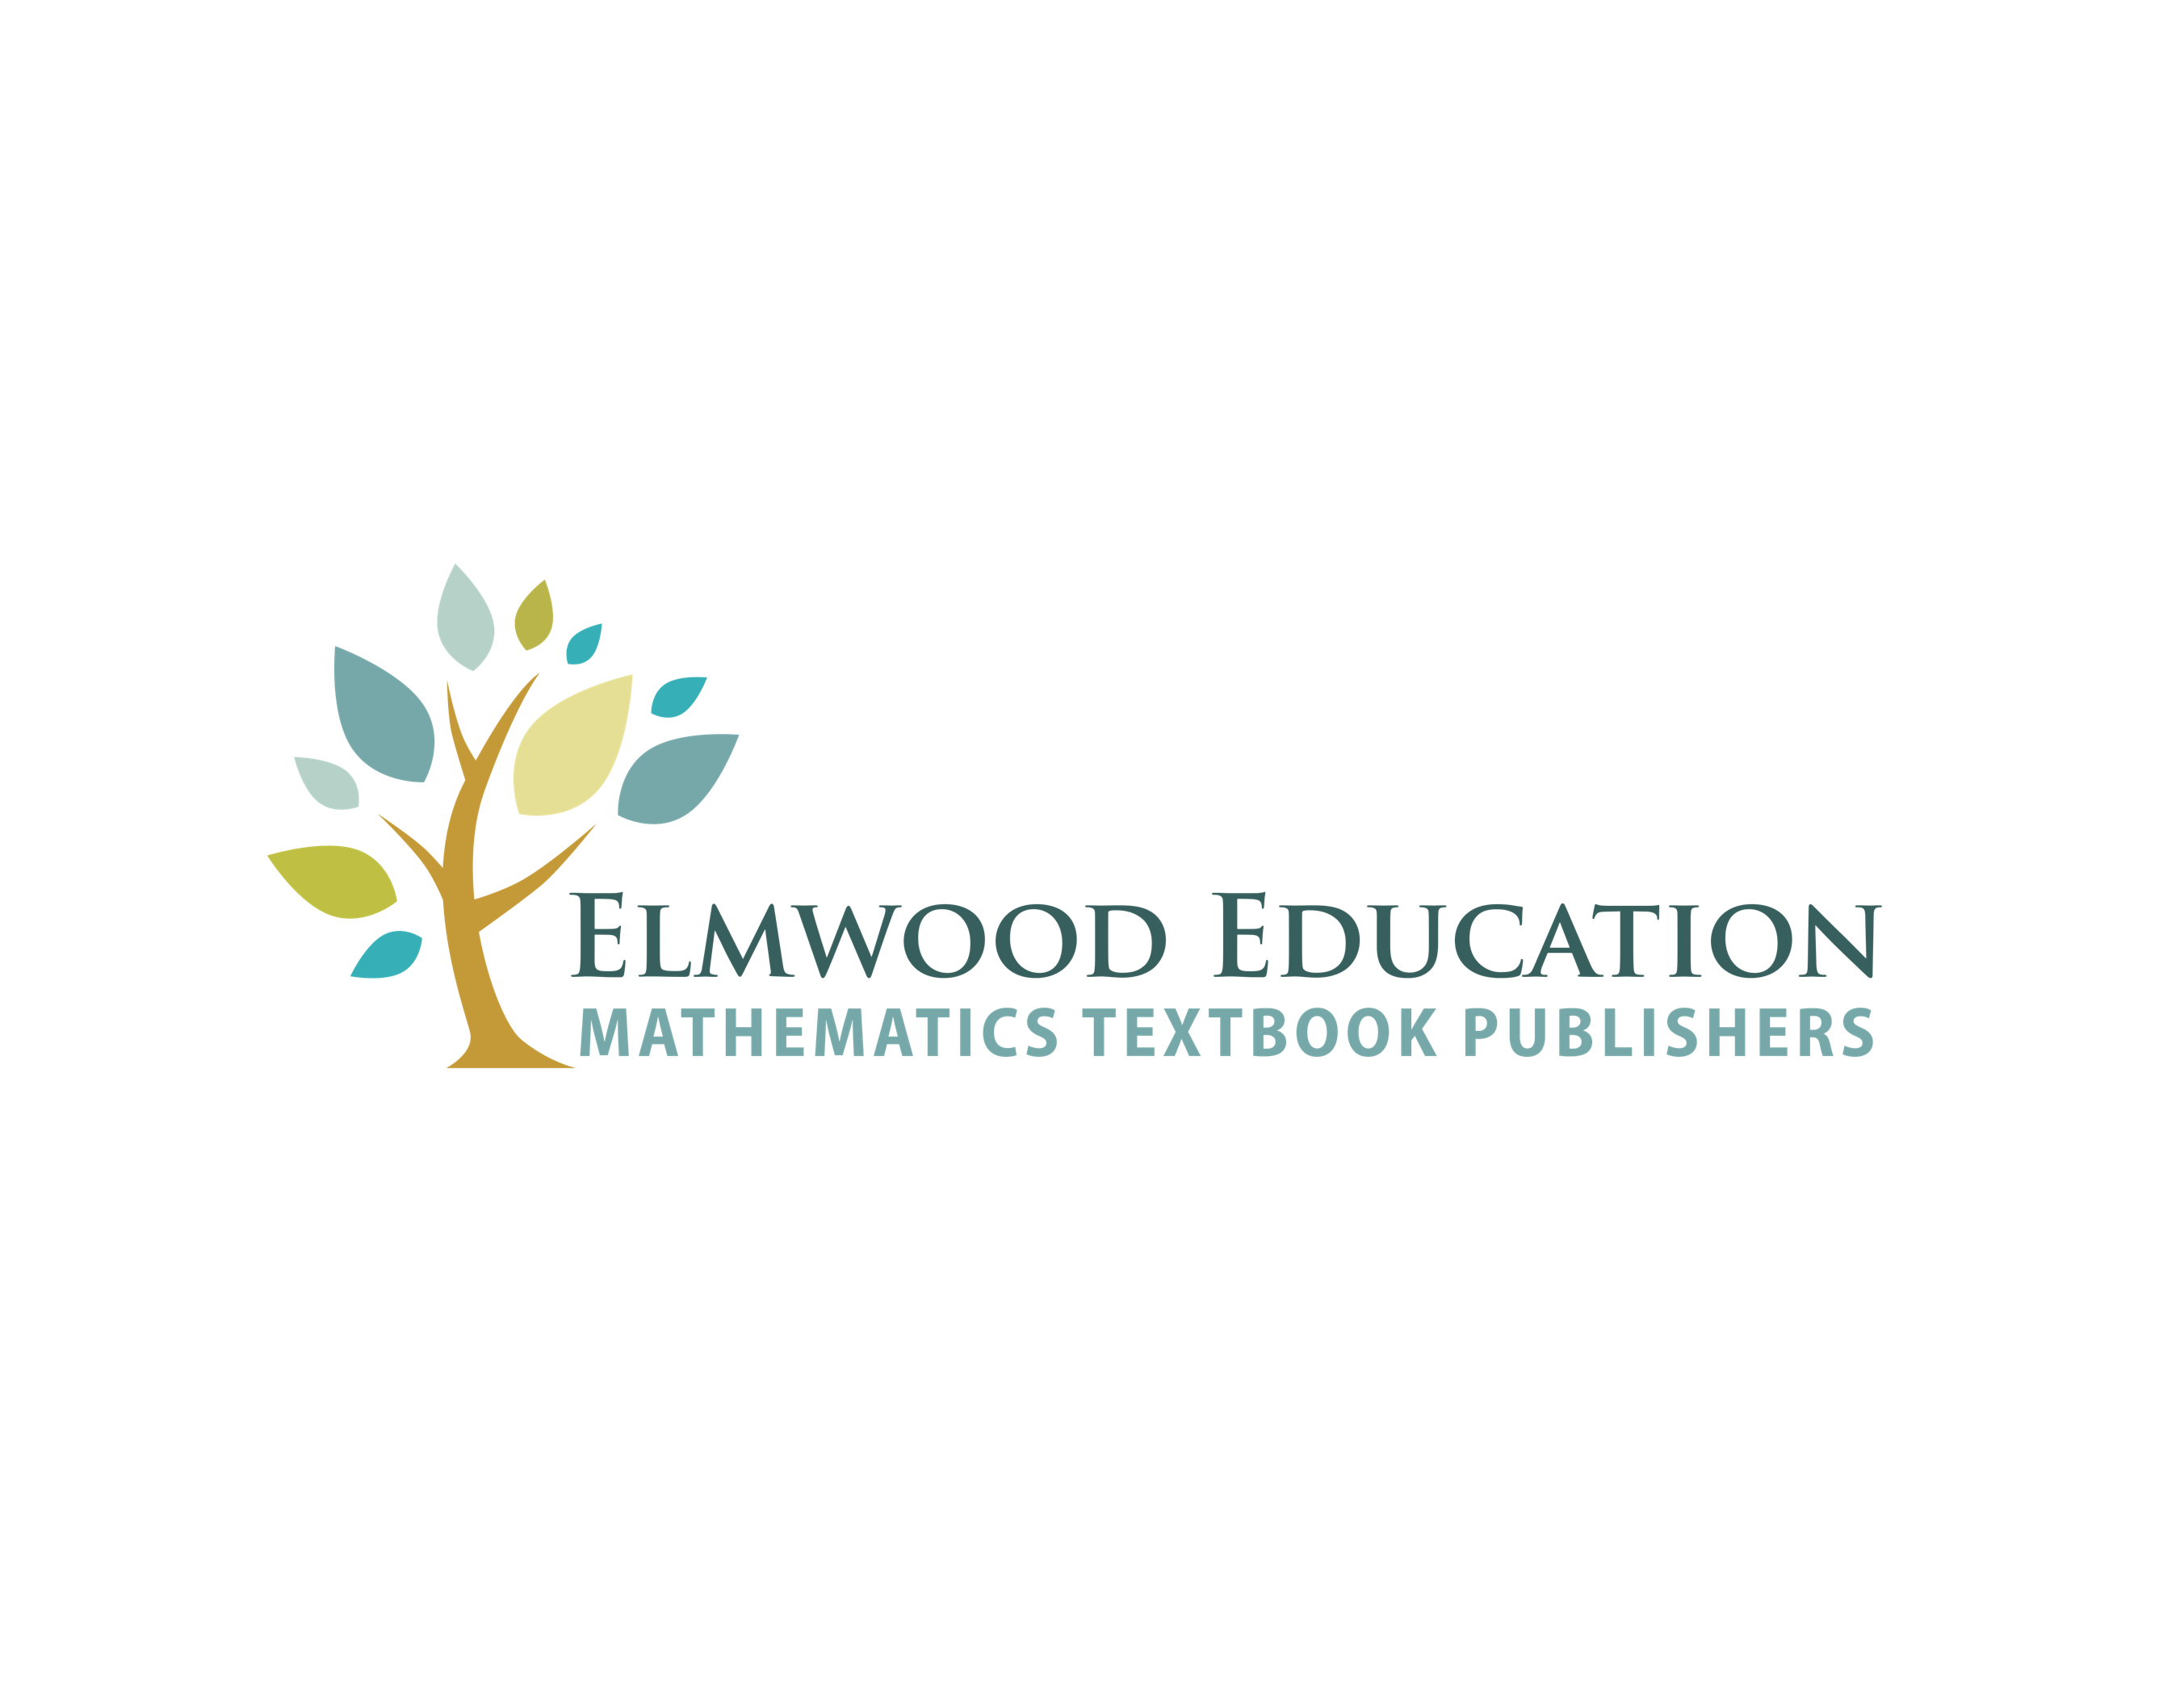 'Elmwood Education'